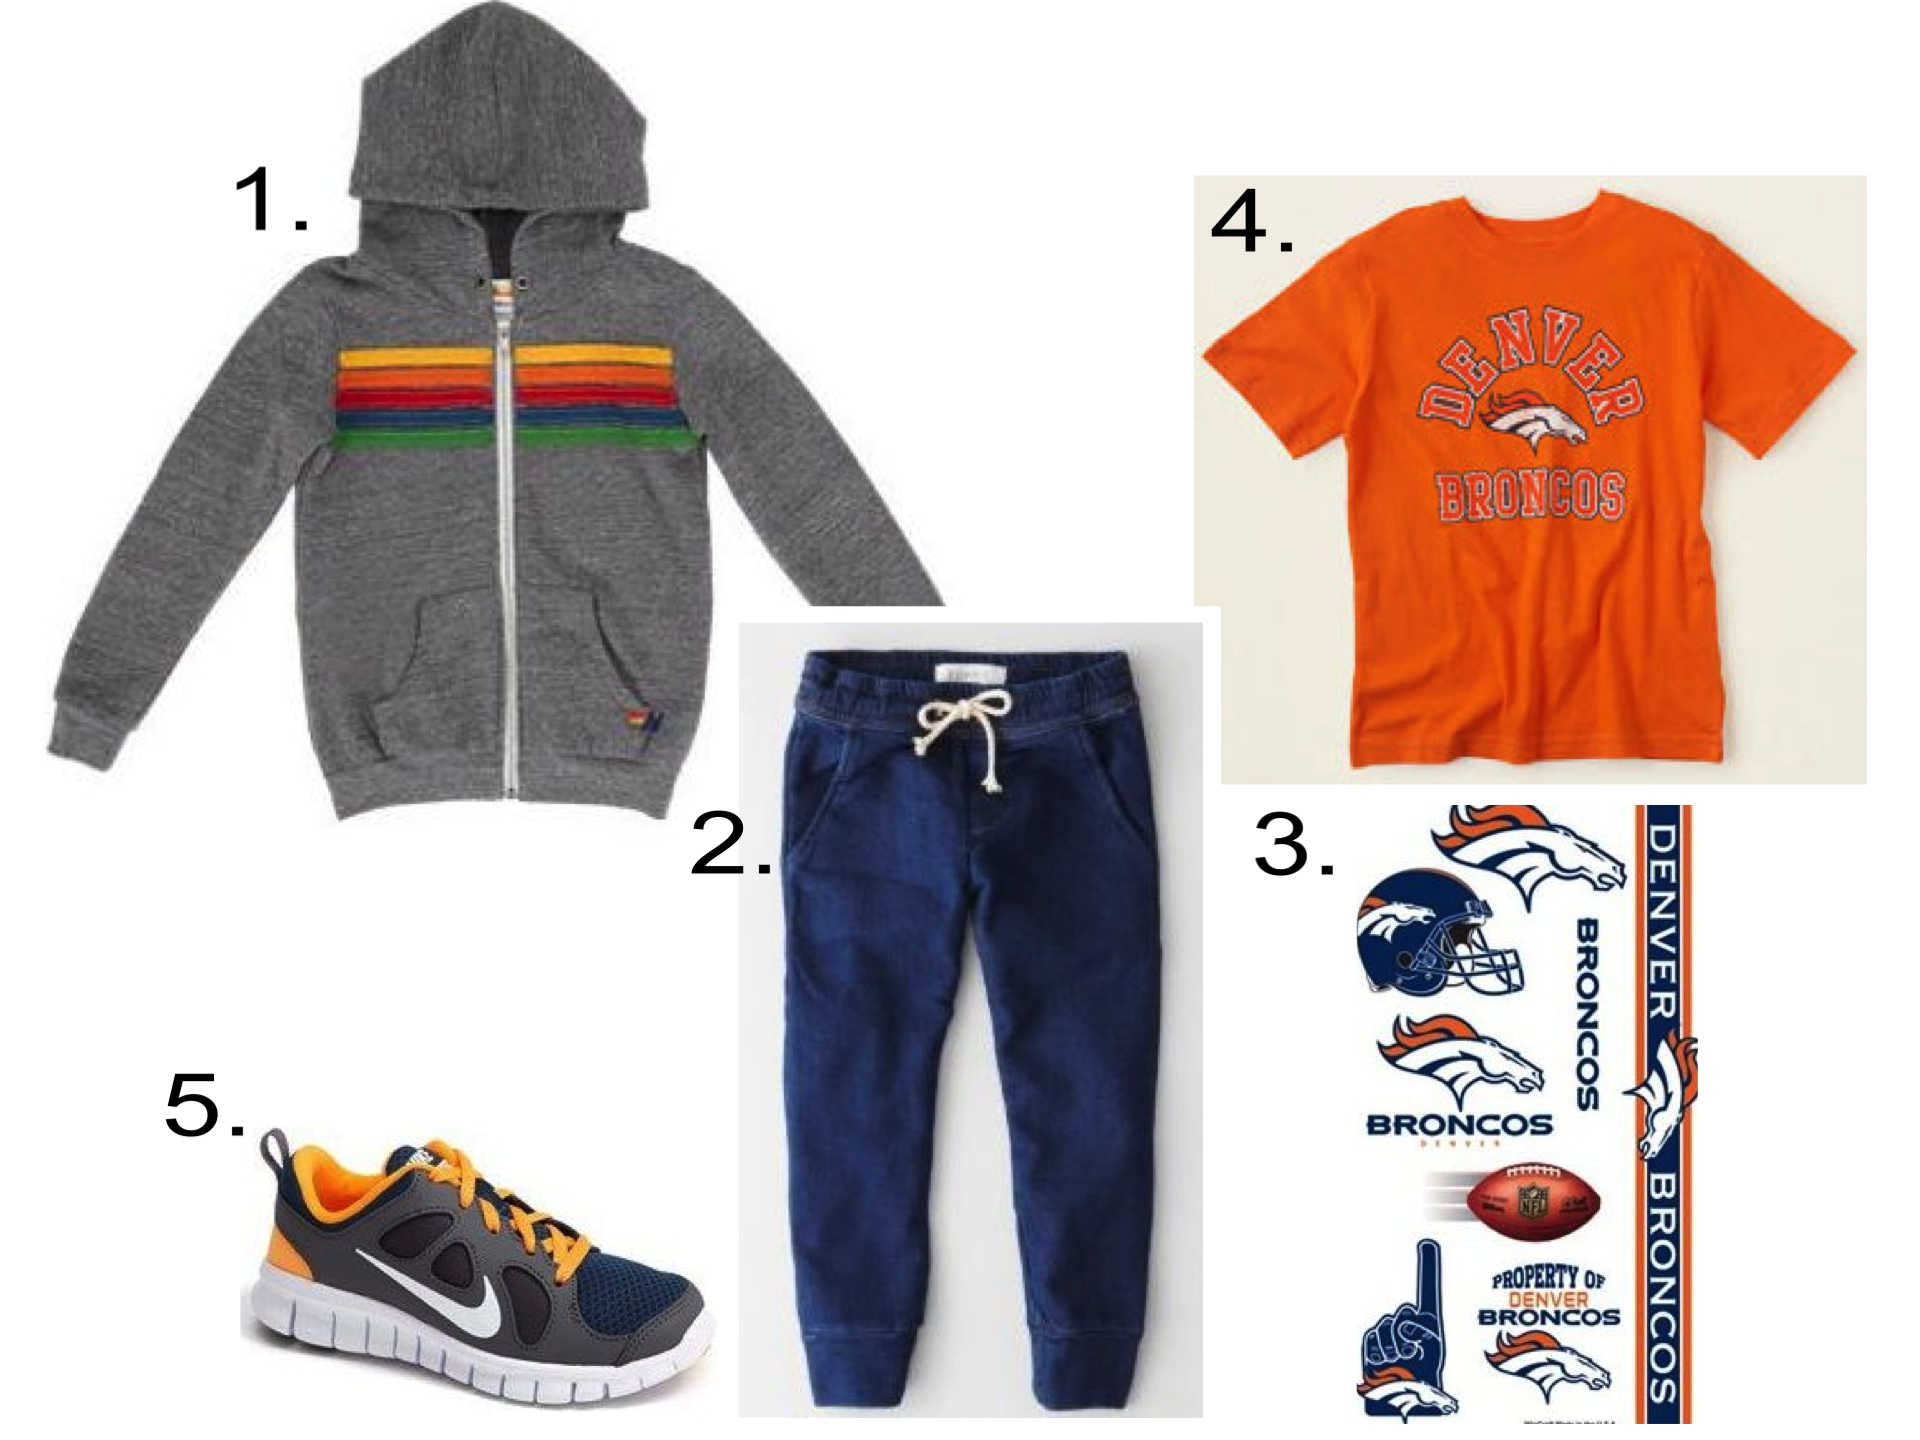 Active Little Denver Broncos Fans will love to wear their Denver Broncos T-Shirt with a comfy pair of sweatpants and a zip front hoodie for layering, worn with Nike Free Sneakers of course. They will also love to cover themselves with Denver Broncos Temporary Tattoos!  1. Aviator Nation  Rainbow-Stripe Hoodie  | 2. Esp No. 1  Point Indigo Sweatpants  |3.  Denver Broncos Temporary Tattoos  | 4.  Denver Broncos Graphic Tee |5.  Nike Free Run 5.0 Running Shoe